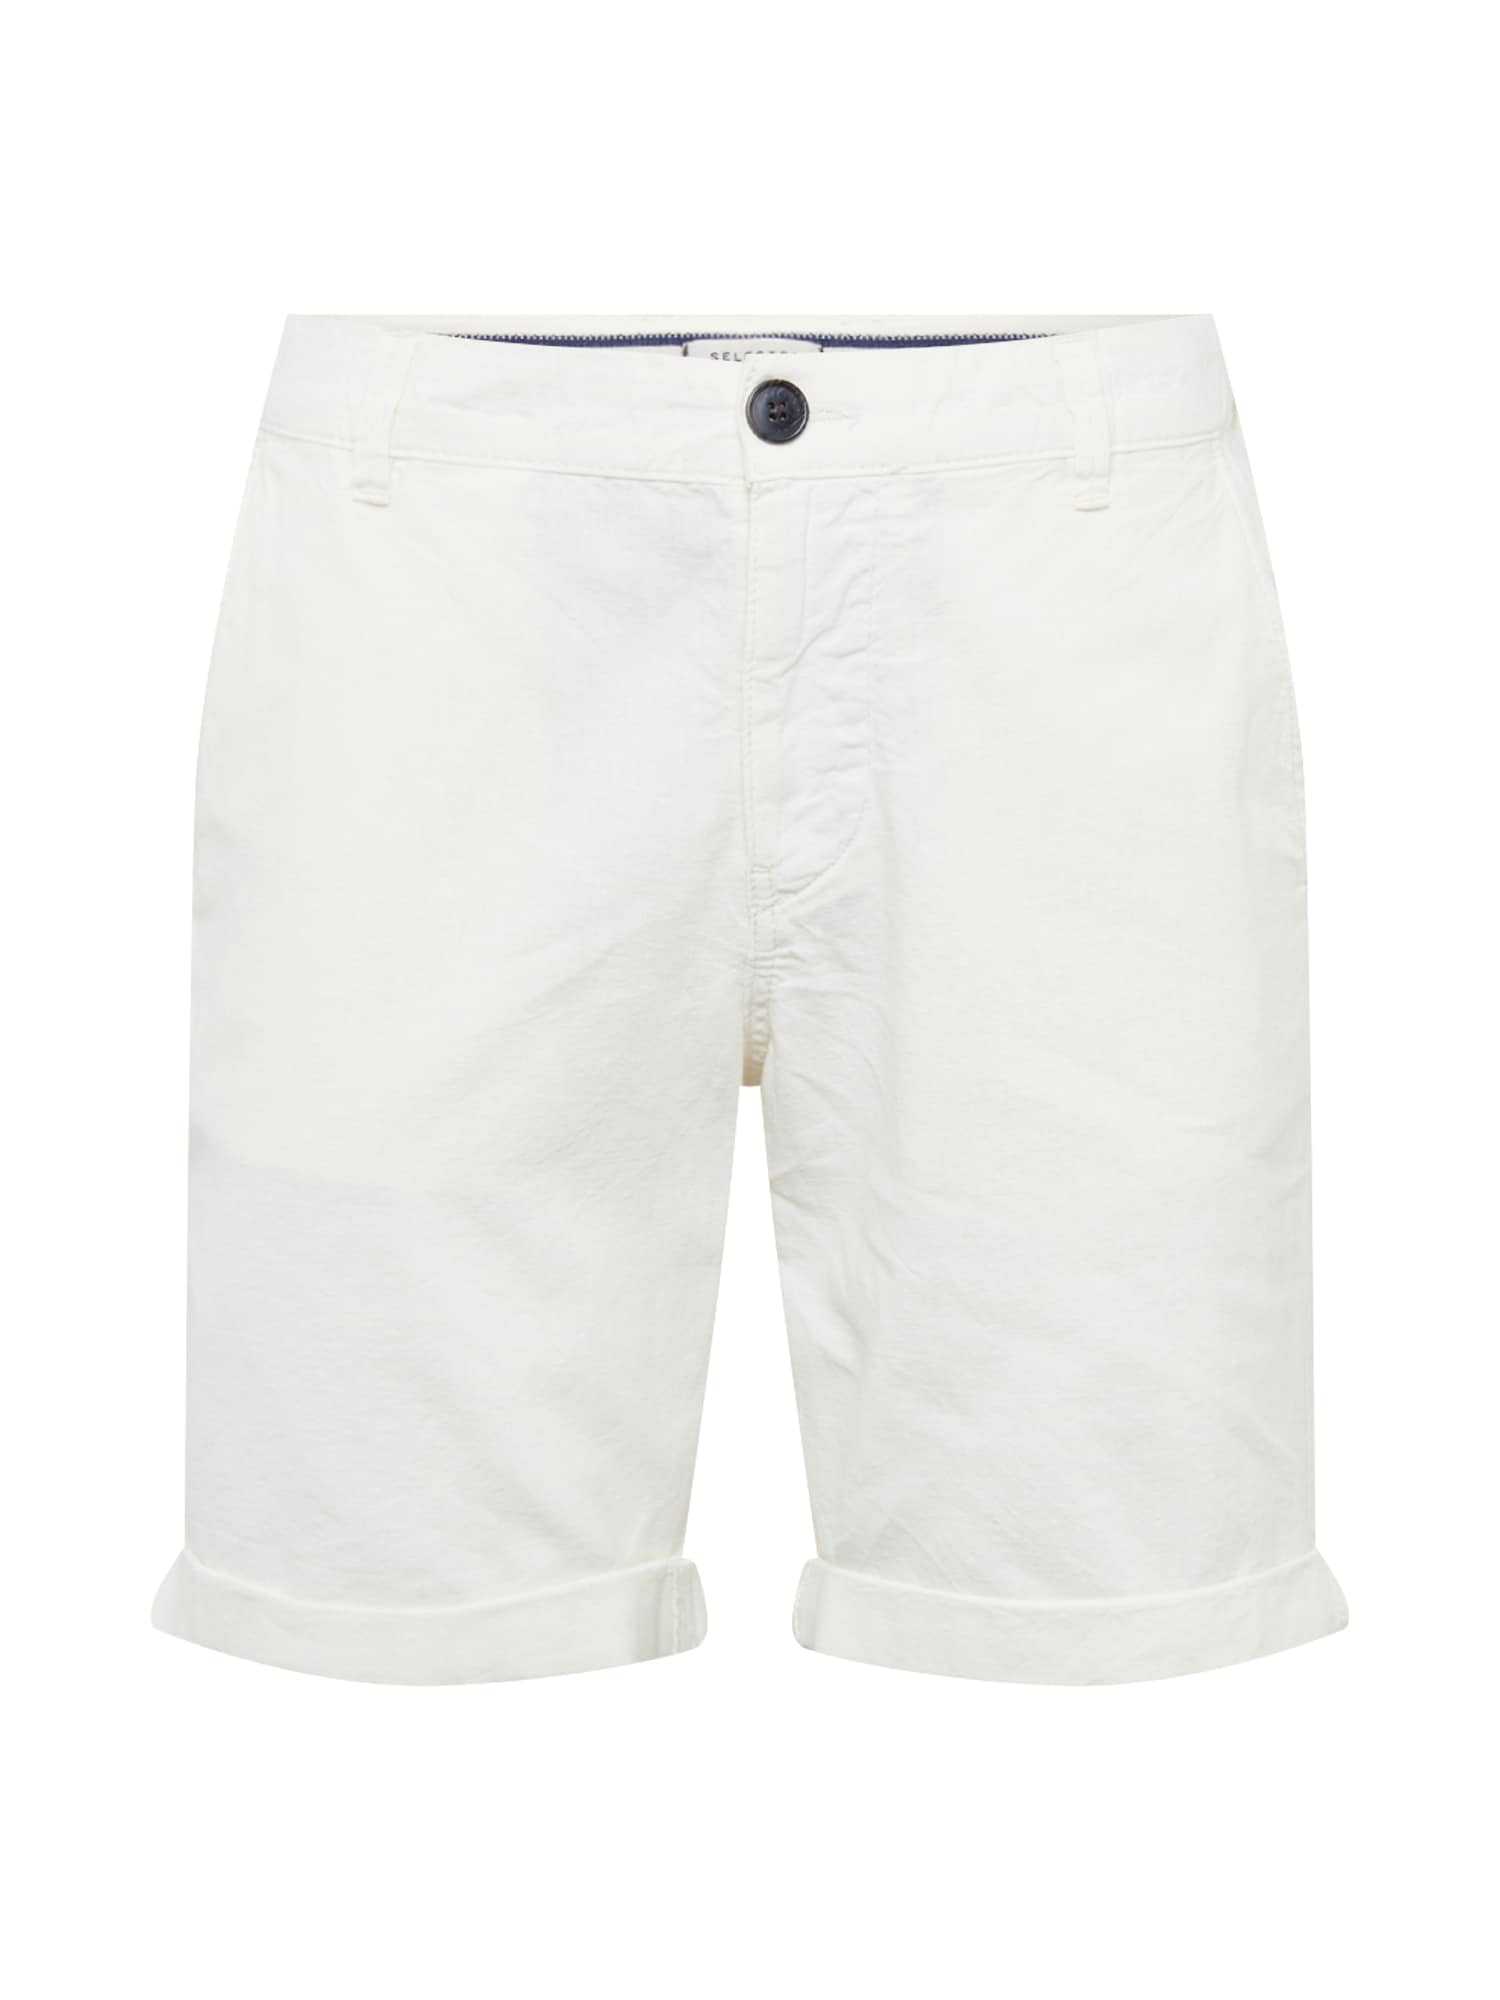 Chino kalhoty SLHStraight-Paris W offwhite SELECTED HOMME